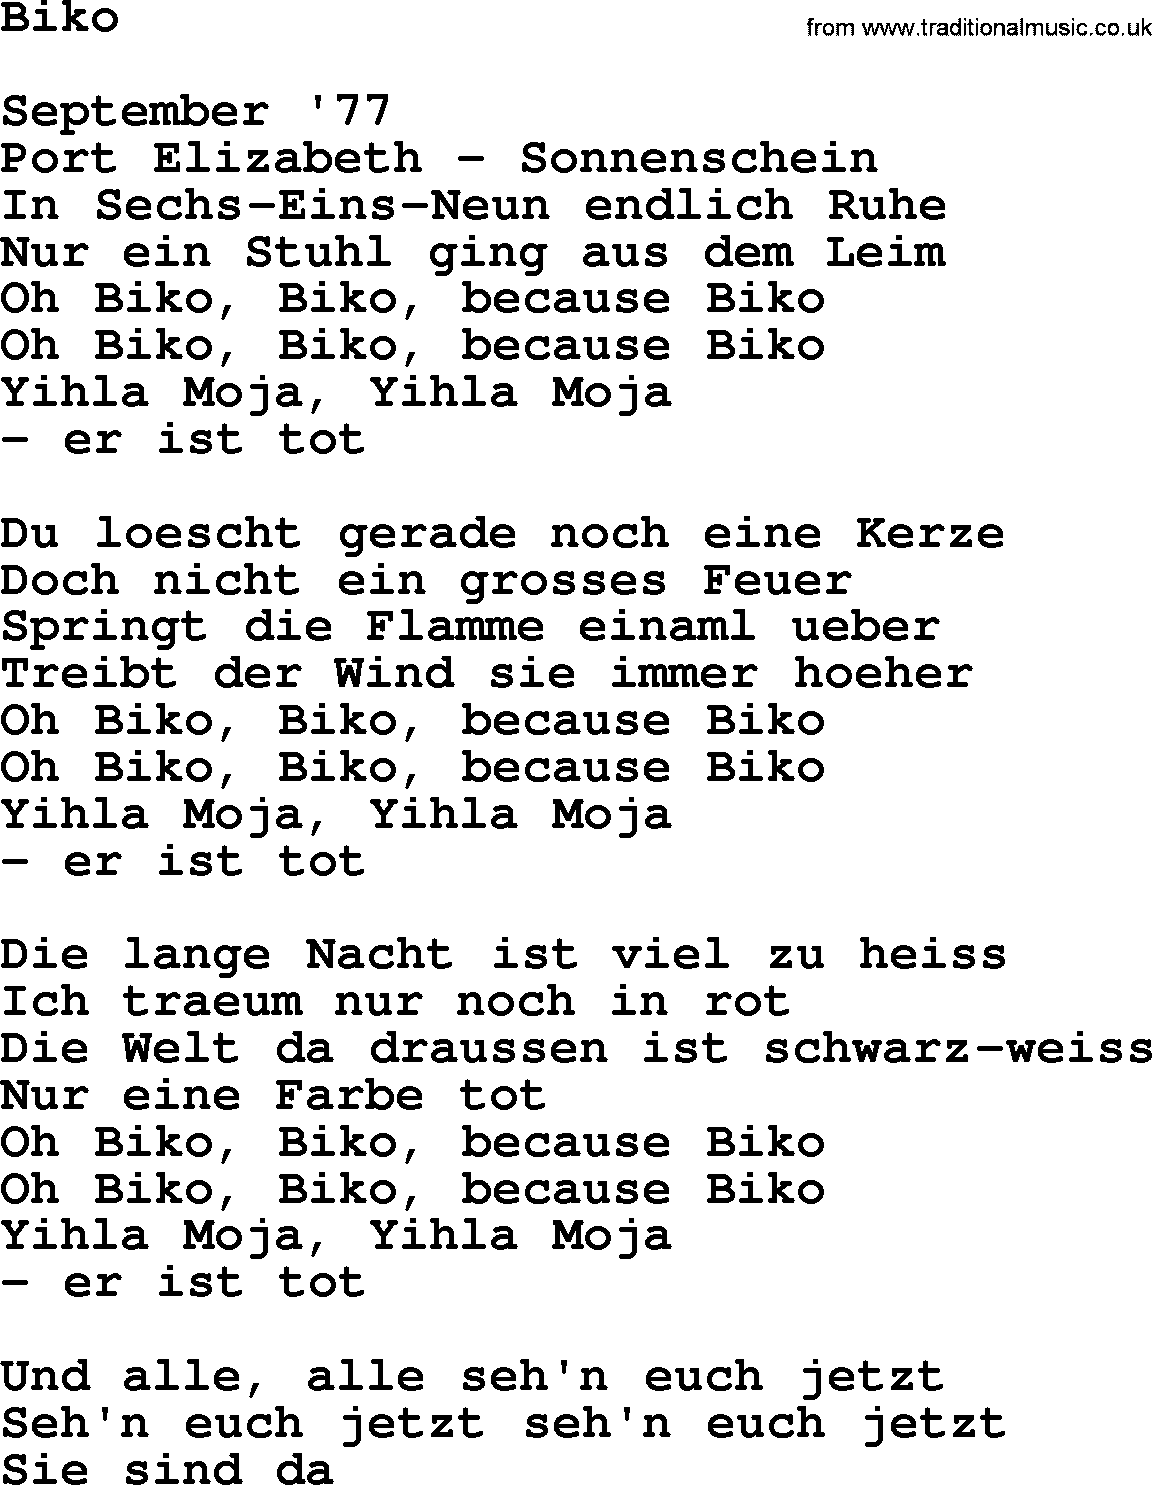 Joan Baez song - Biko, lyrics